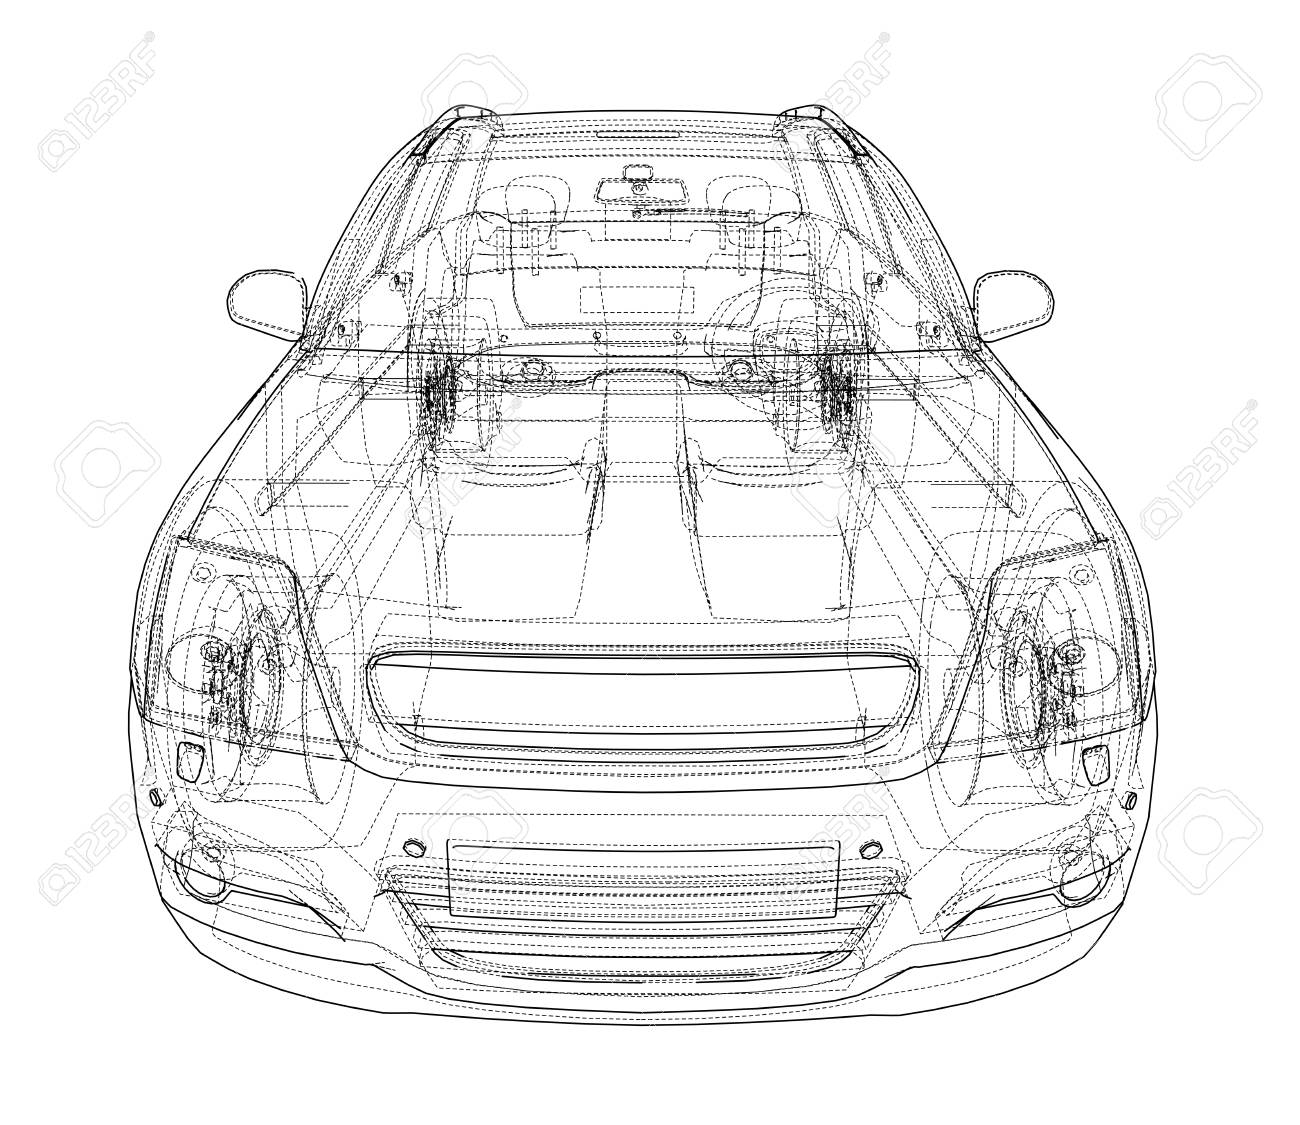 Concept car blueprint stock photo picture and royalty free image concept car blueprint stock photo 98783528 malvernweather Choice Image